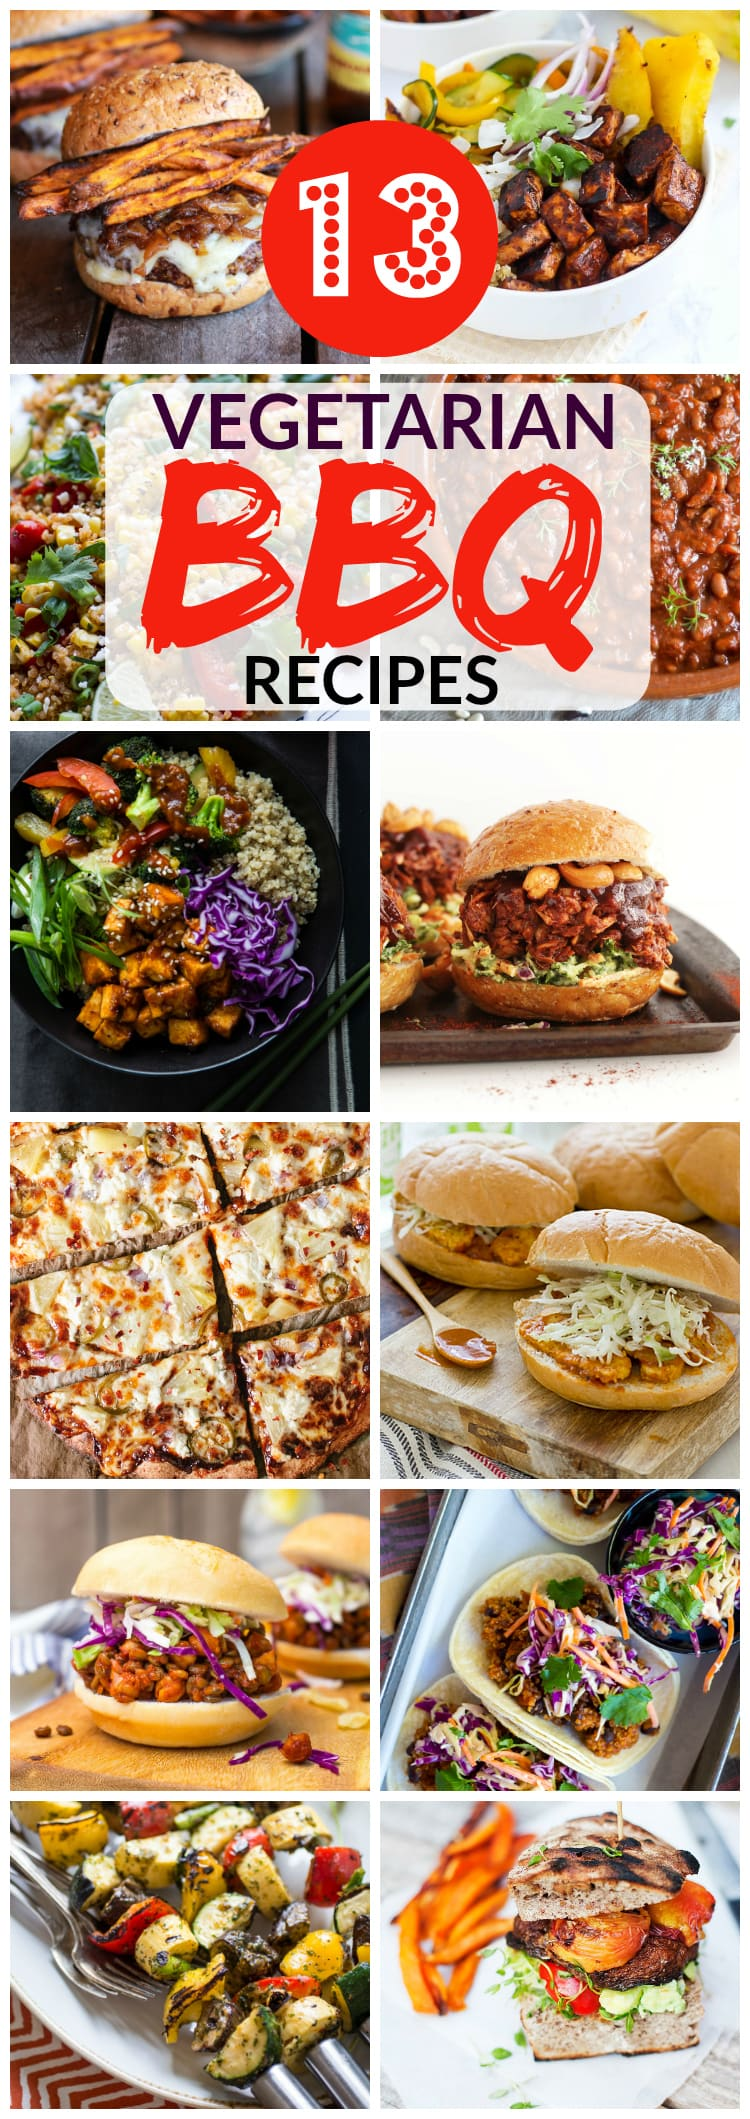 Vegetarian BBQ Recipes aren't just for Meatless Monday! Enjoy these tasty meat-free recipes all summer long.